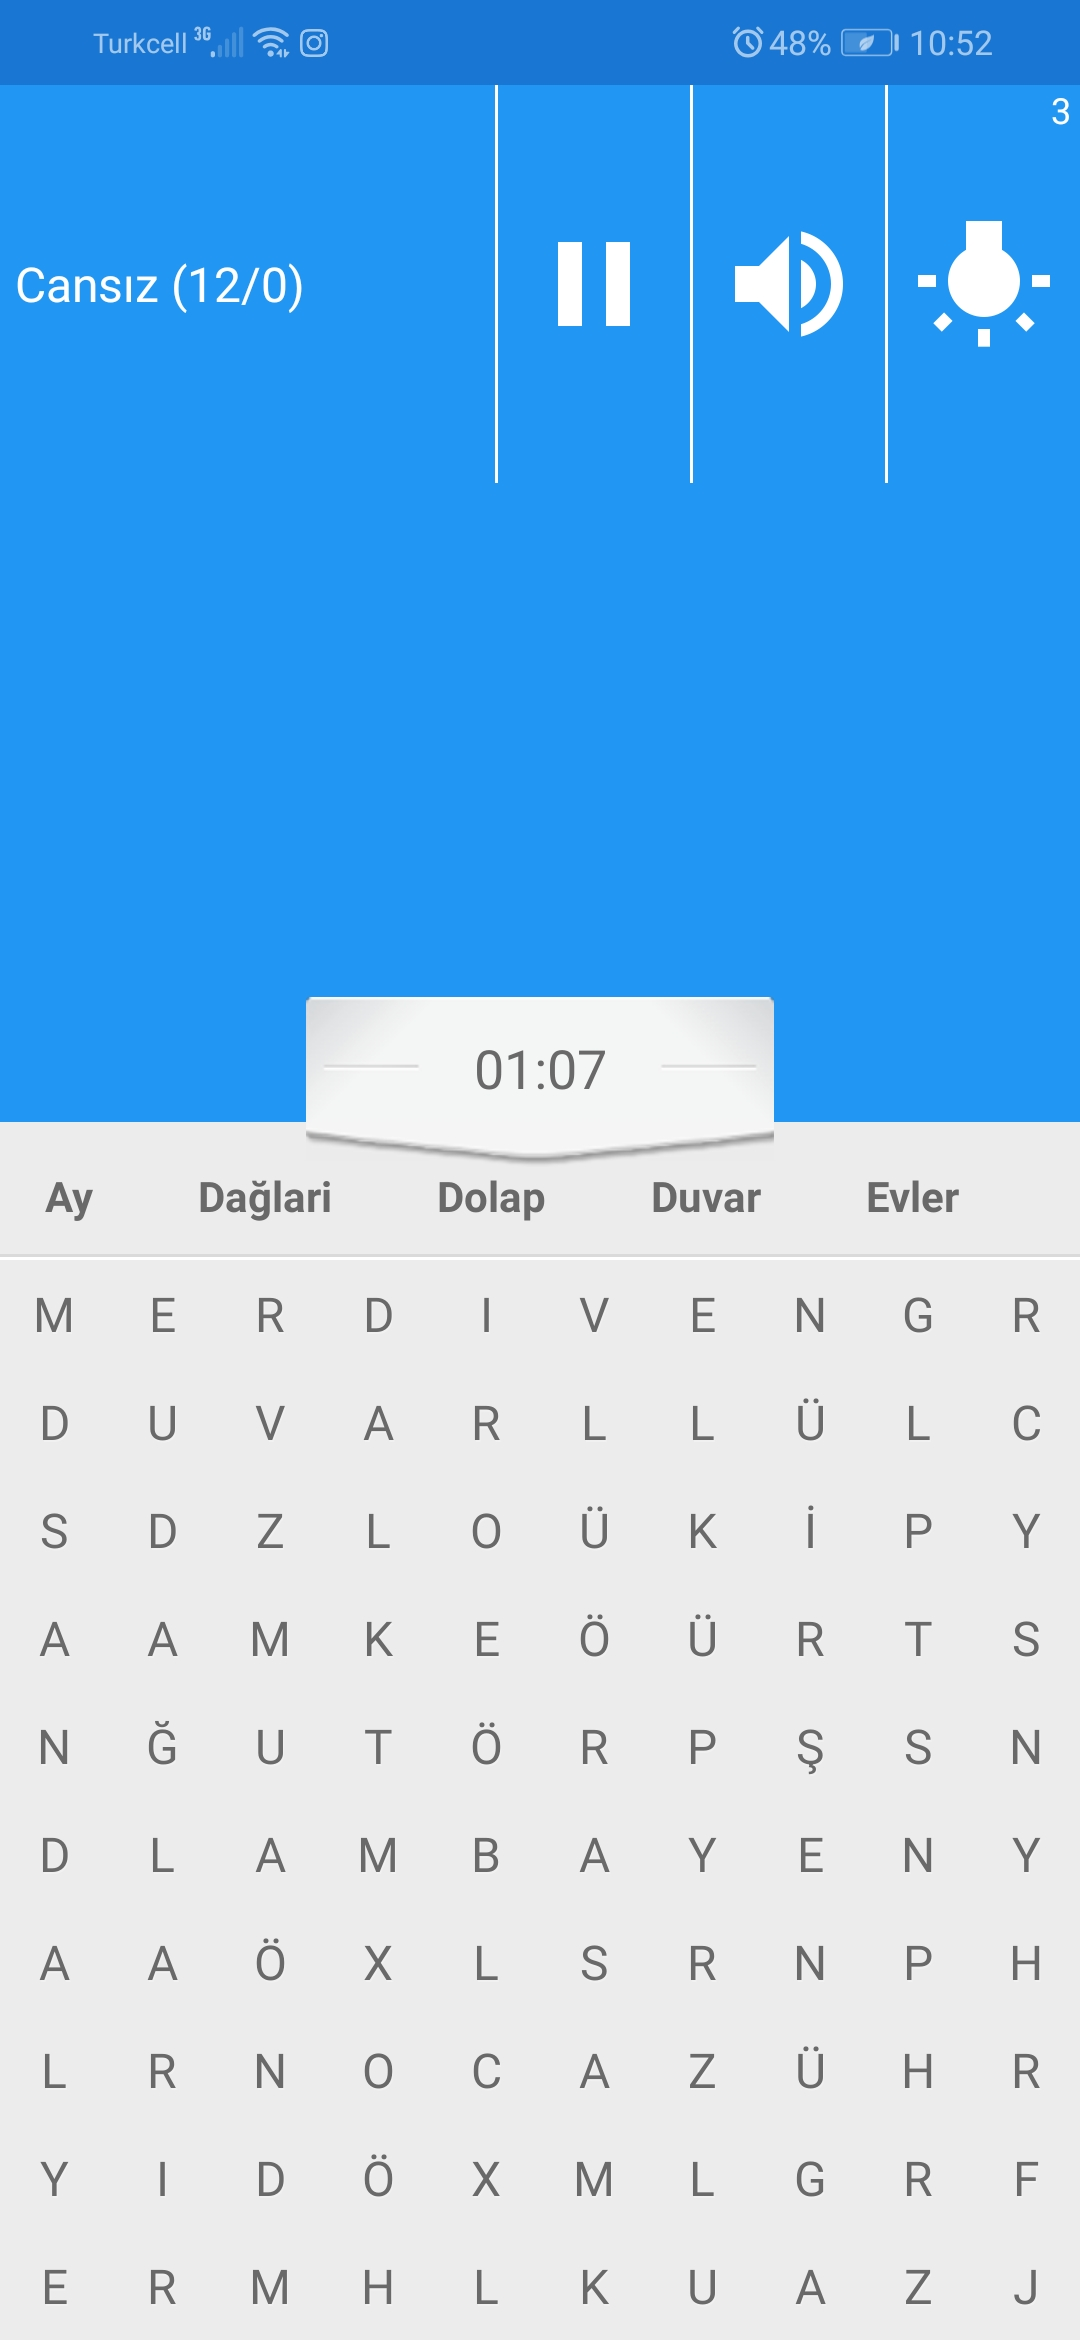 Android-based application design is a three-level crossword